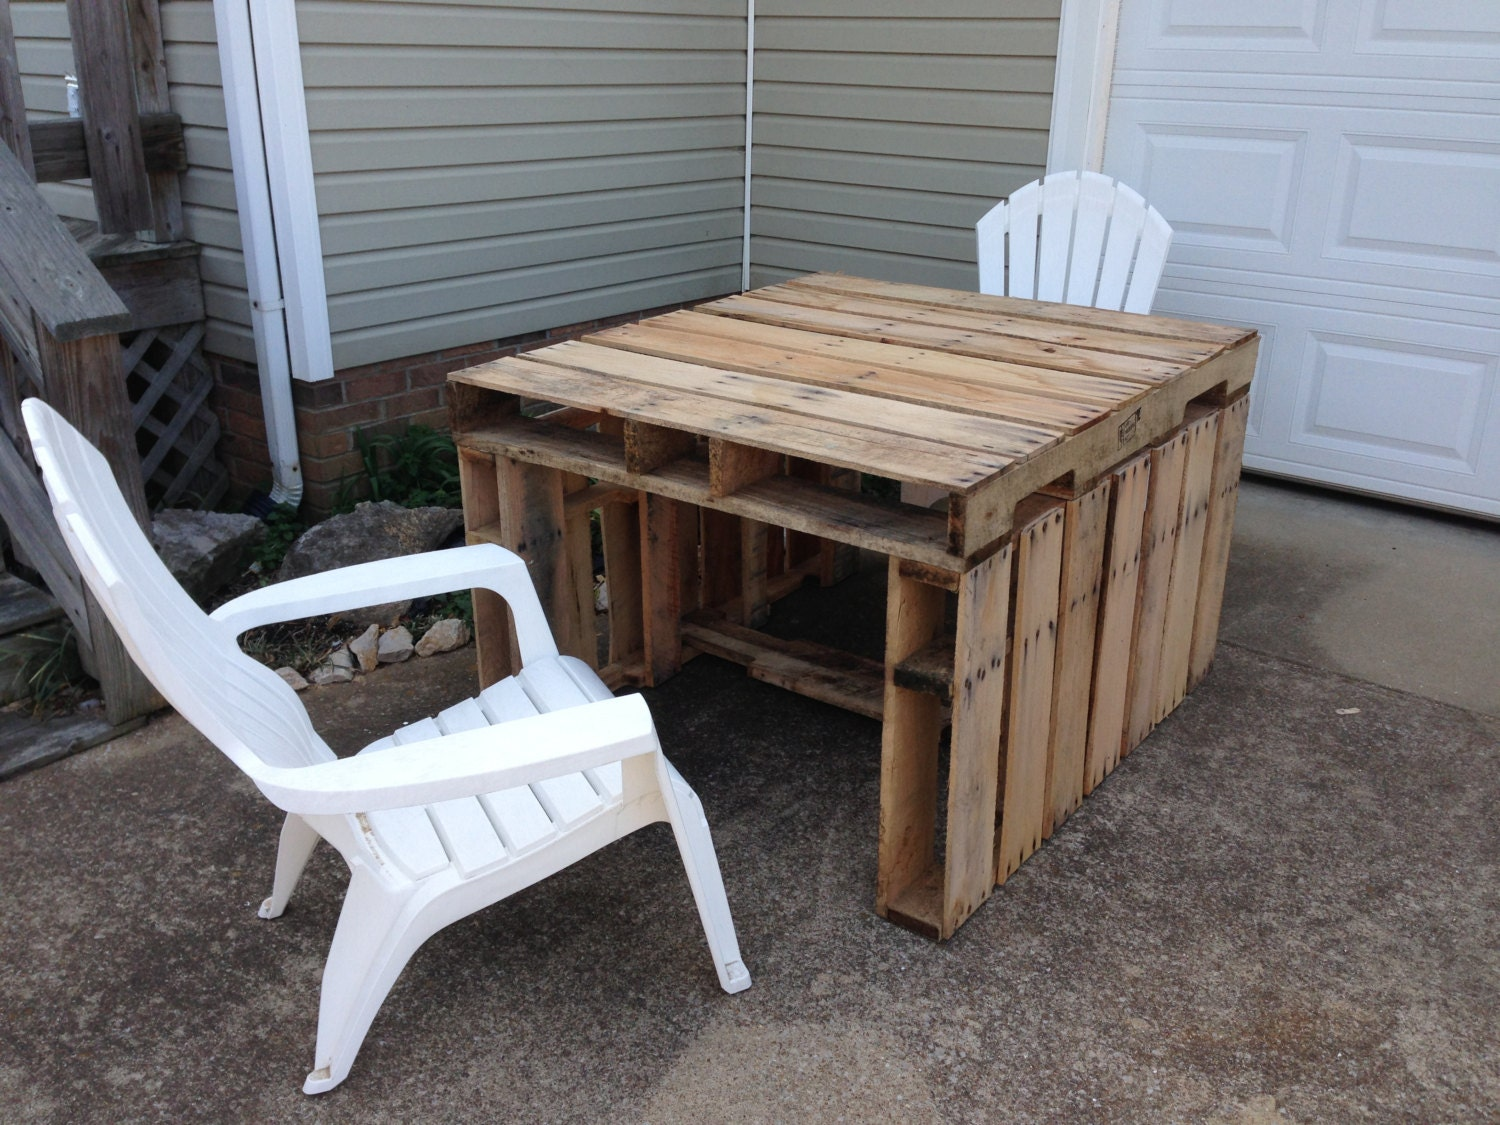 Patio table made of repurposed pallets by givetake on etsy for Patio table made from pallets